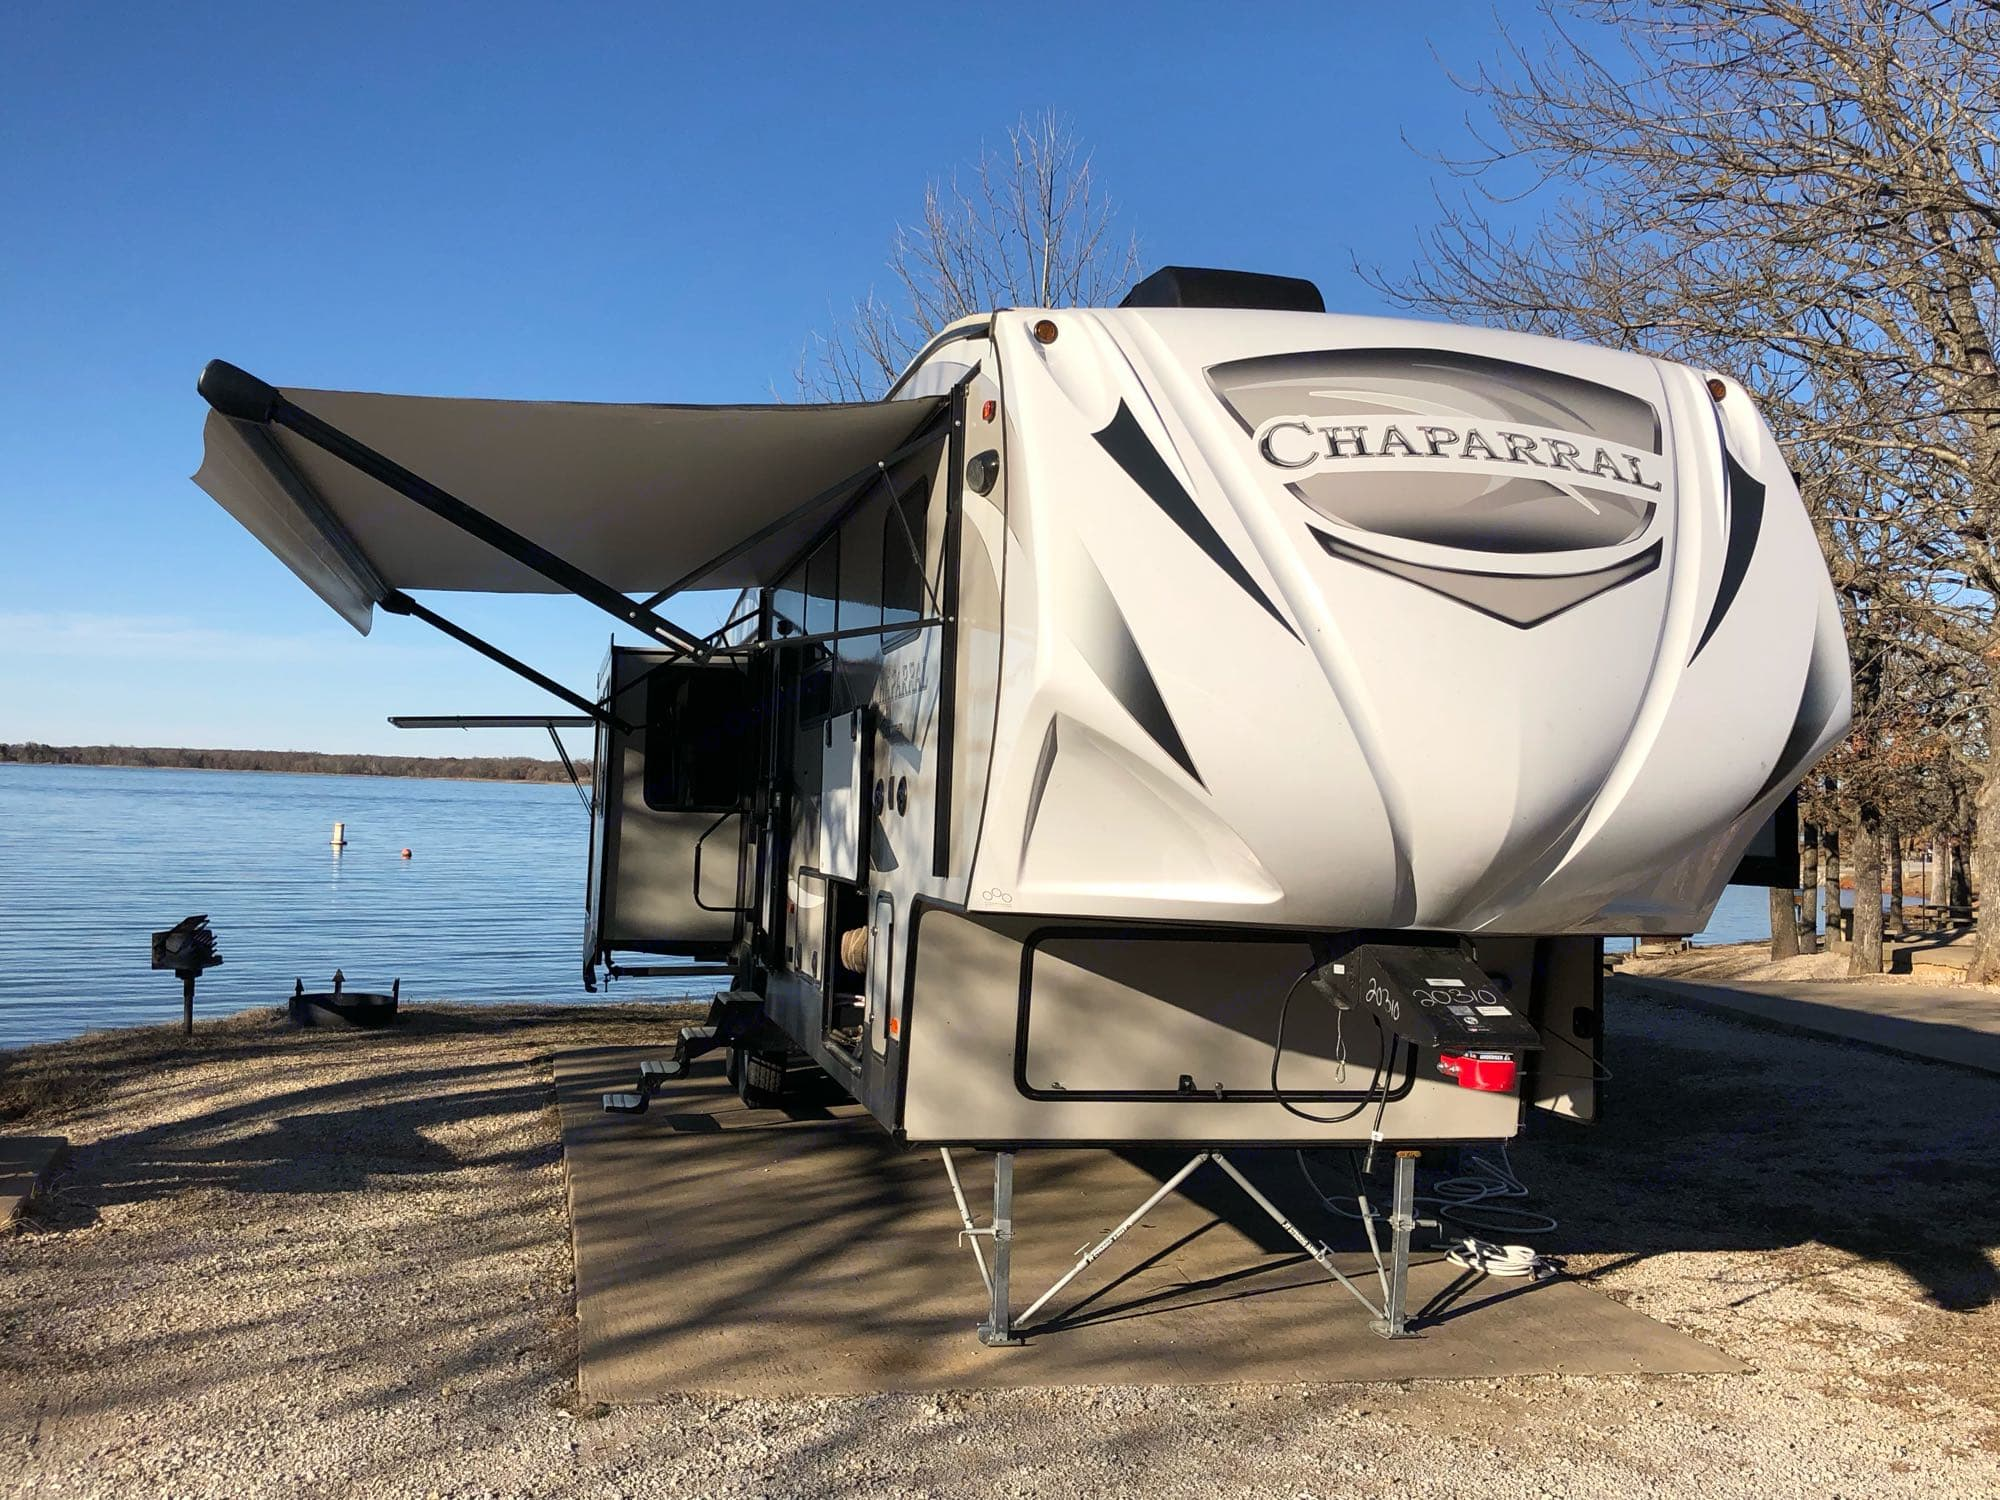 2019 Coachmen Chaparral 392MBL with awning and slide outs extended . Coachmen Chaparral 2019